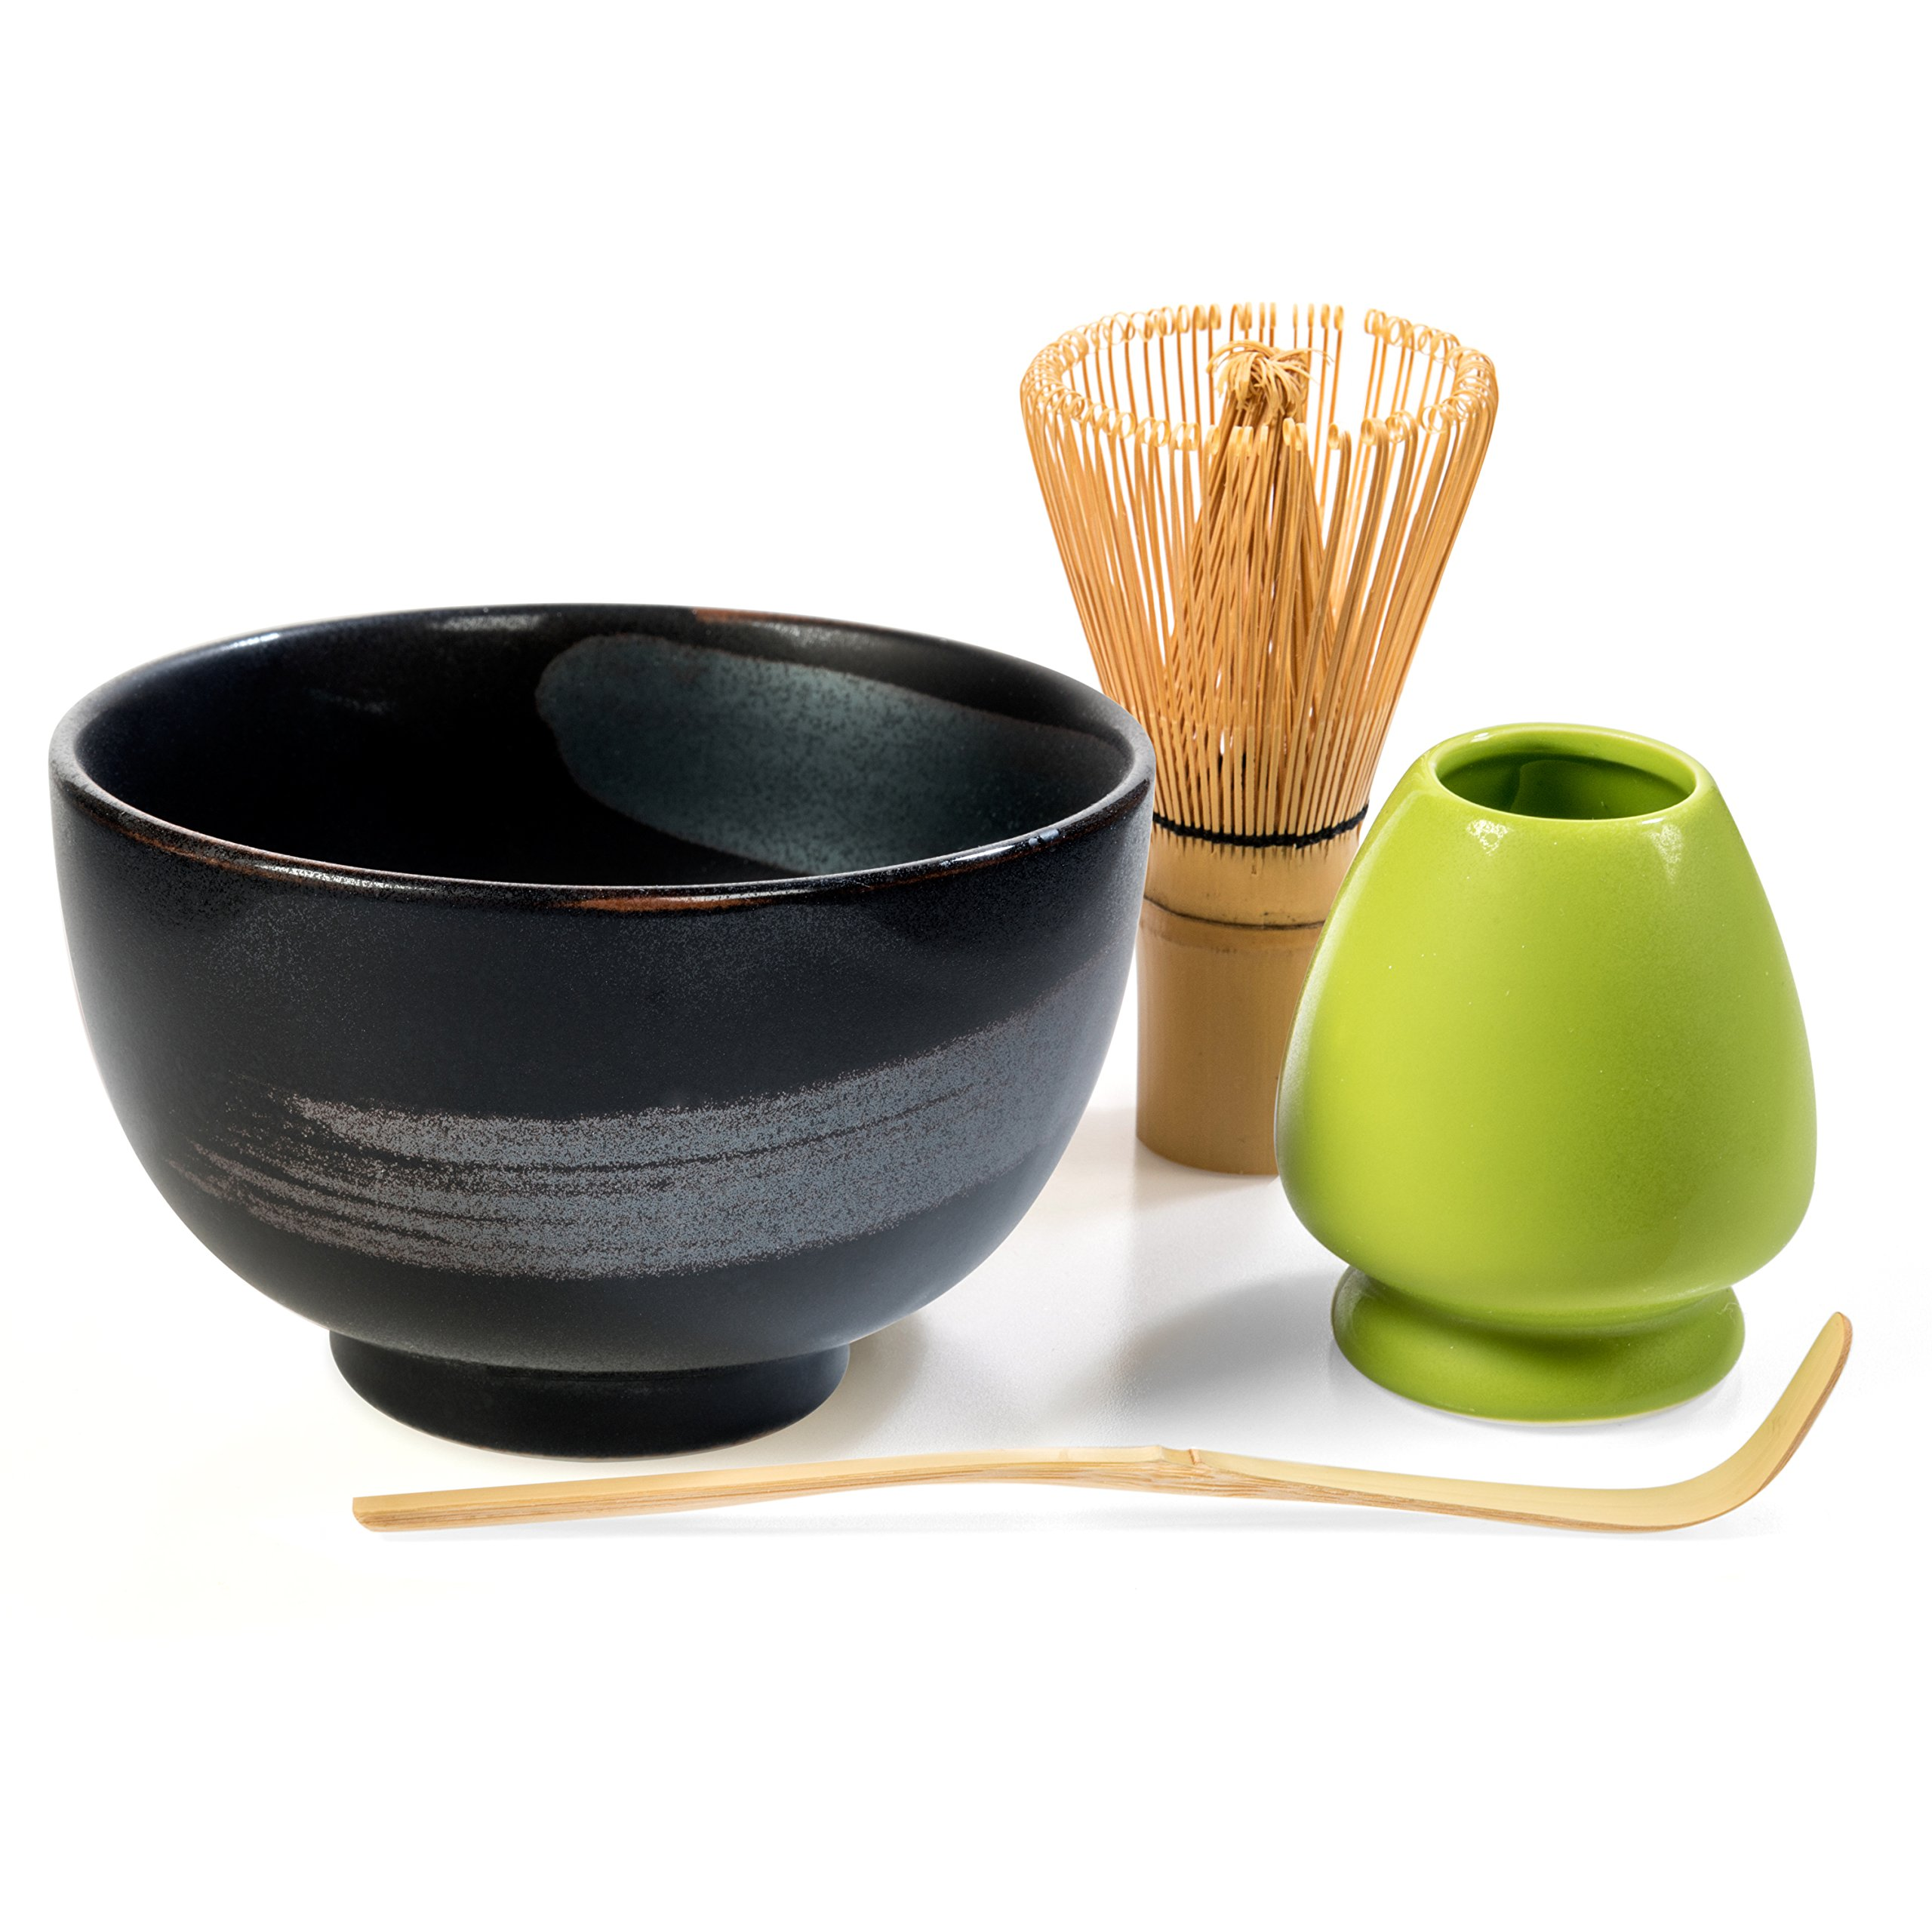 Tealyra - Matcha - Start Up Kit - 4 items - Matcha Green Tea Gift Set - Japanese Made Black Bowl - Bamboo Whisk and Scoop - Whisk Holder - Gift Box